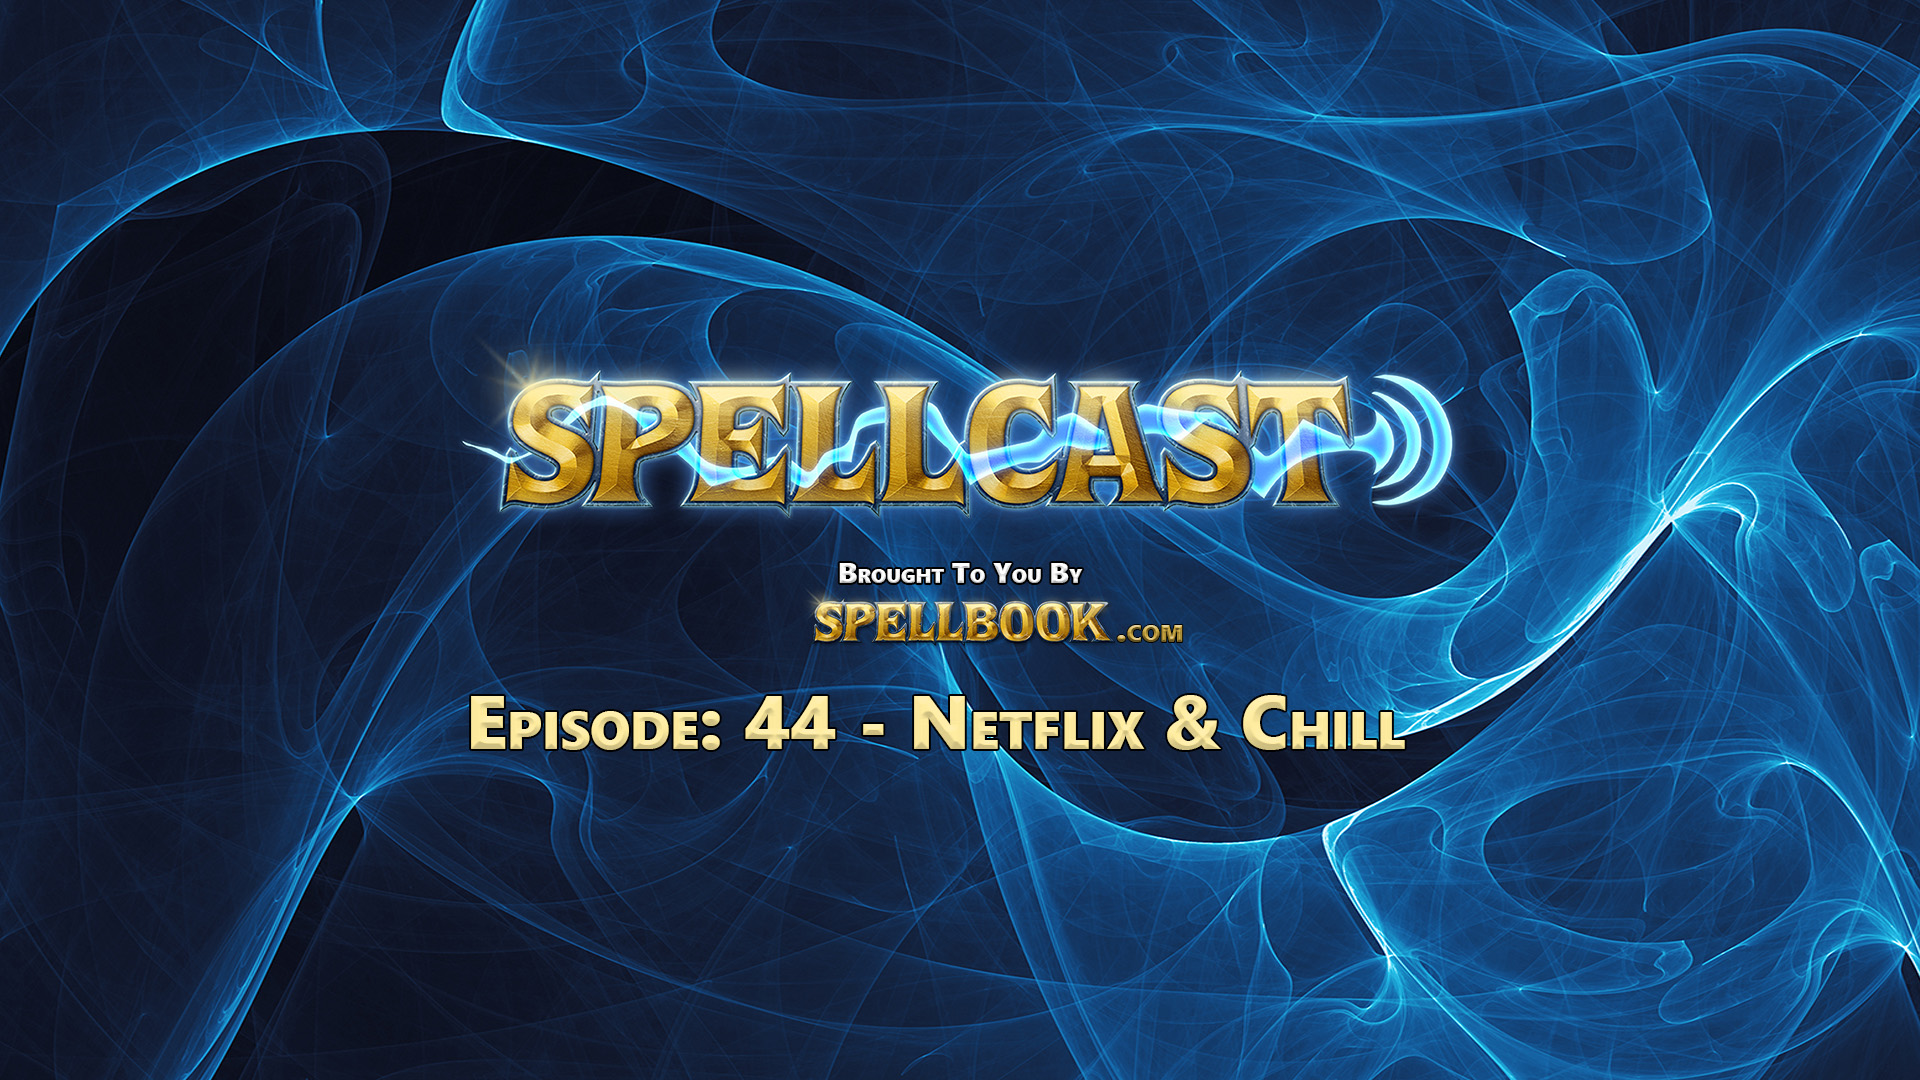 Spellcast Episode: 44 - Netflix & Chill